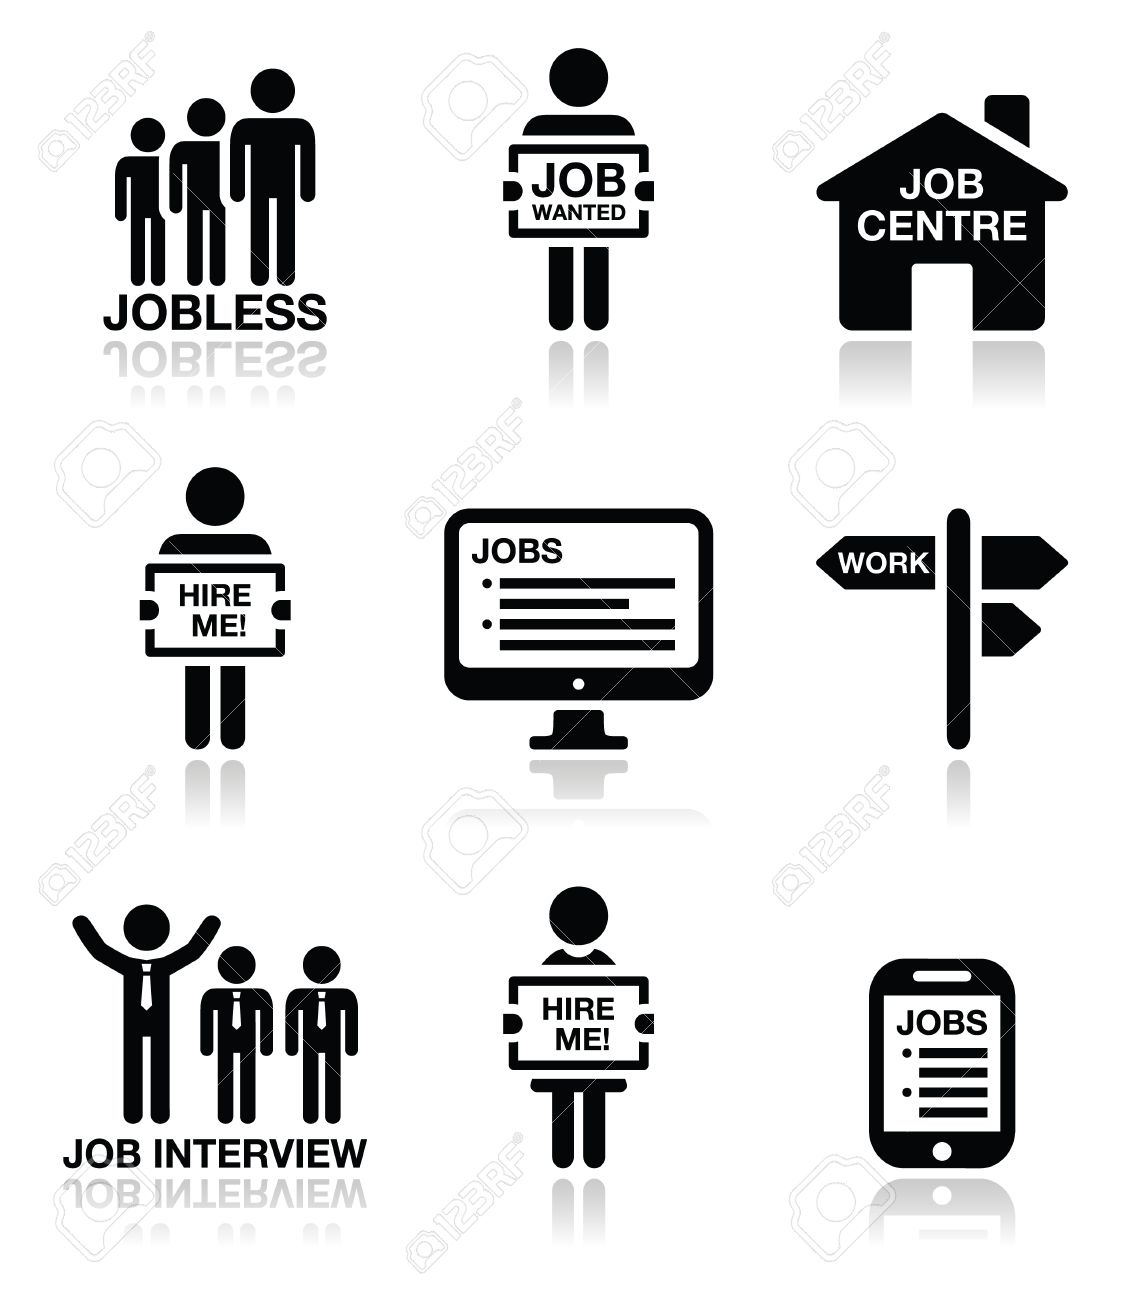 unemployment job searches vector icons set royalty cliparts unemployment job searches vector icons set stock vector 29835088